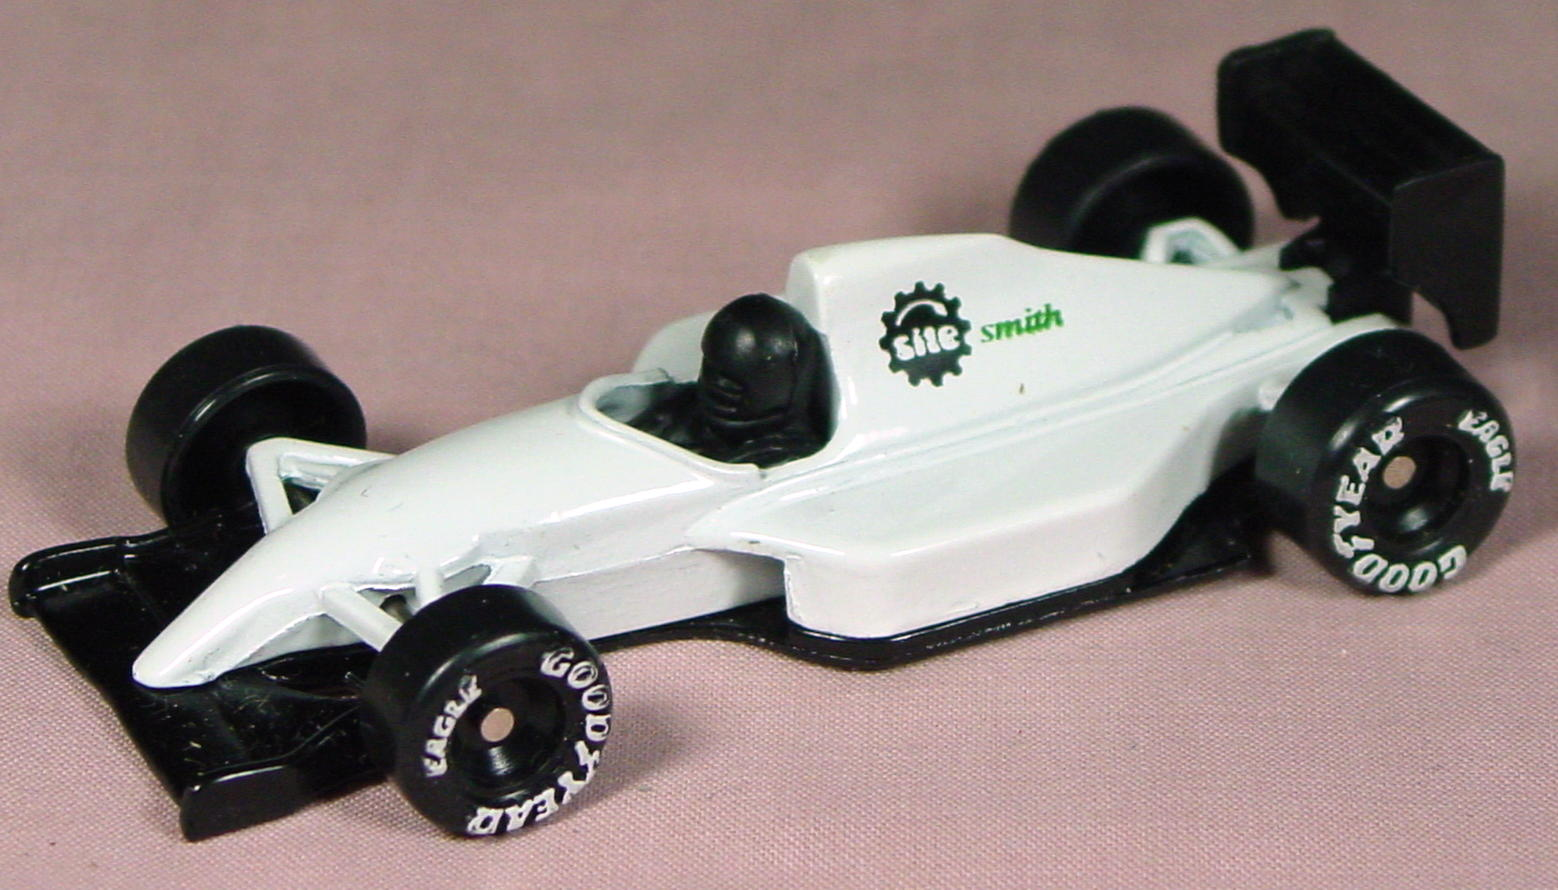 ASAP-CCI 74 J 30 - Formula One Racer White Site Smith made in China ASAP